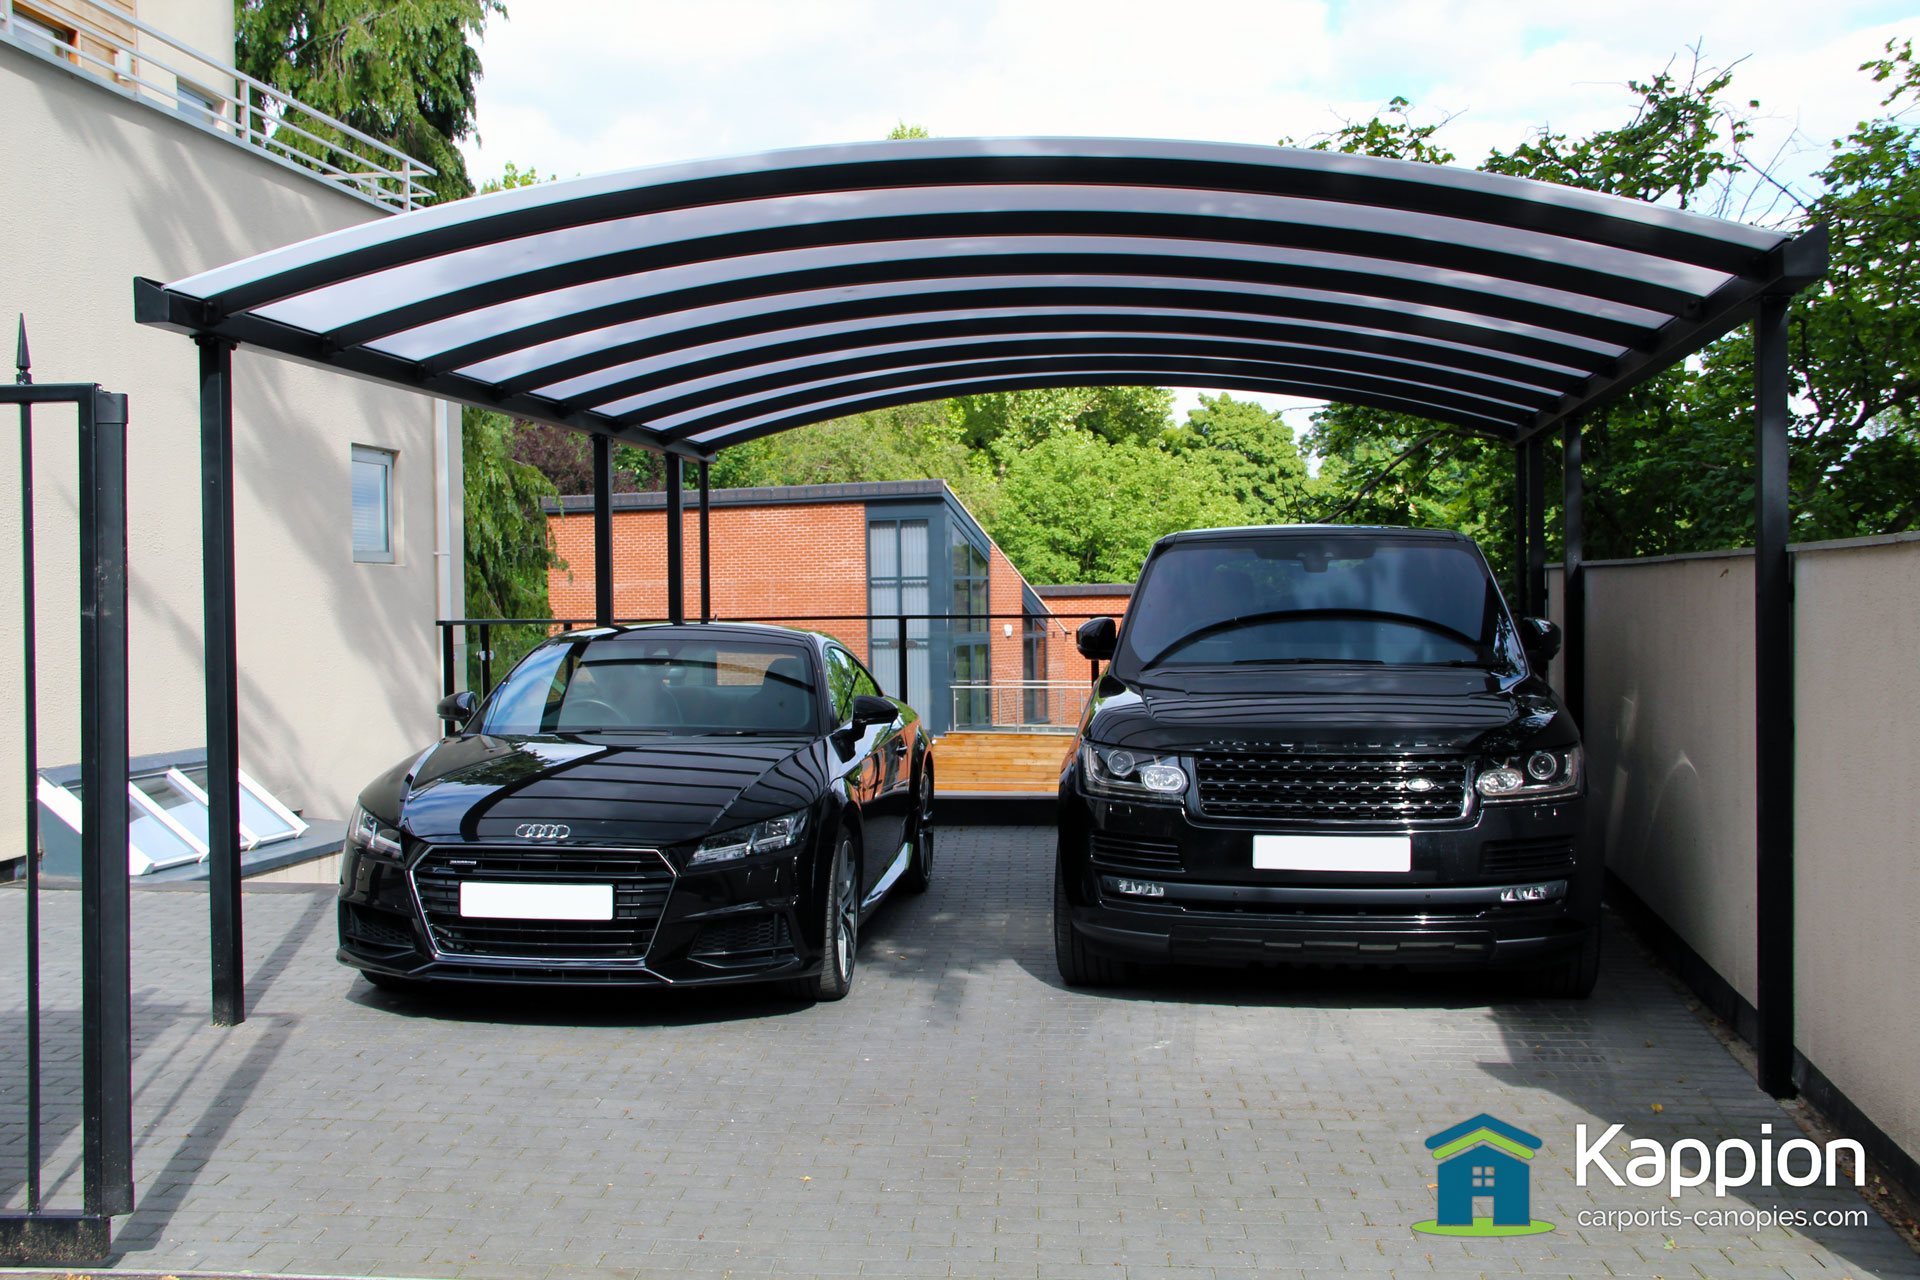 Modern Carport Canopy : Double carport installed in nottingham kappion carports